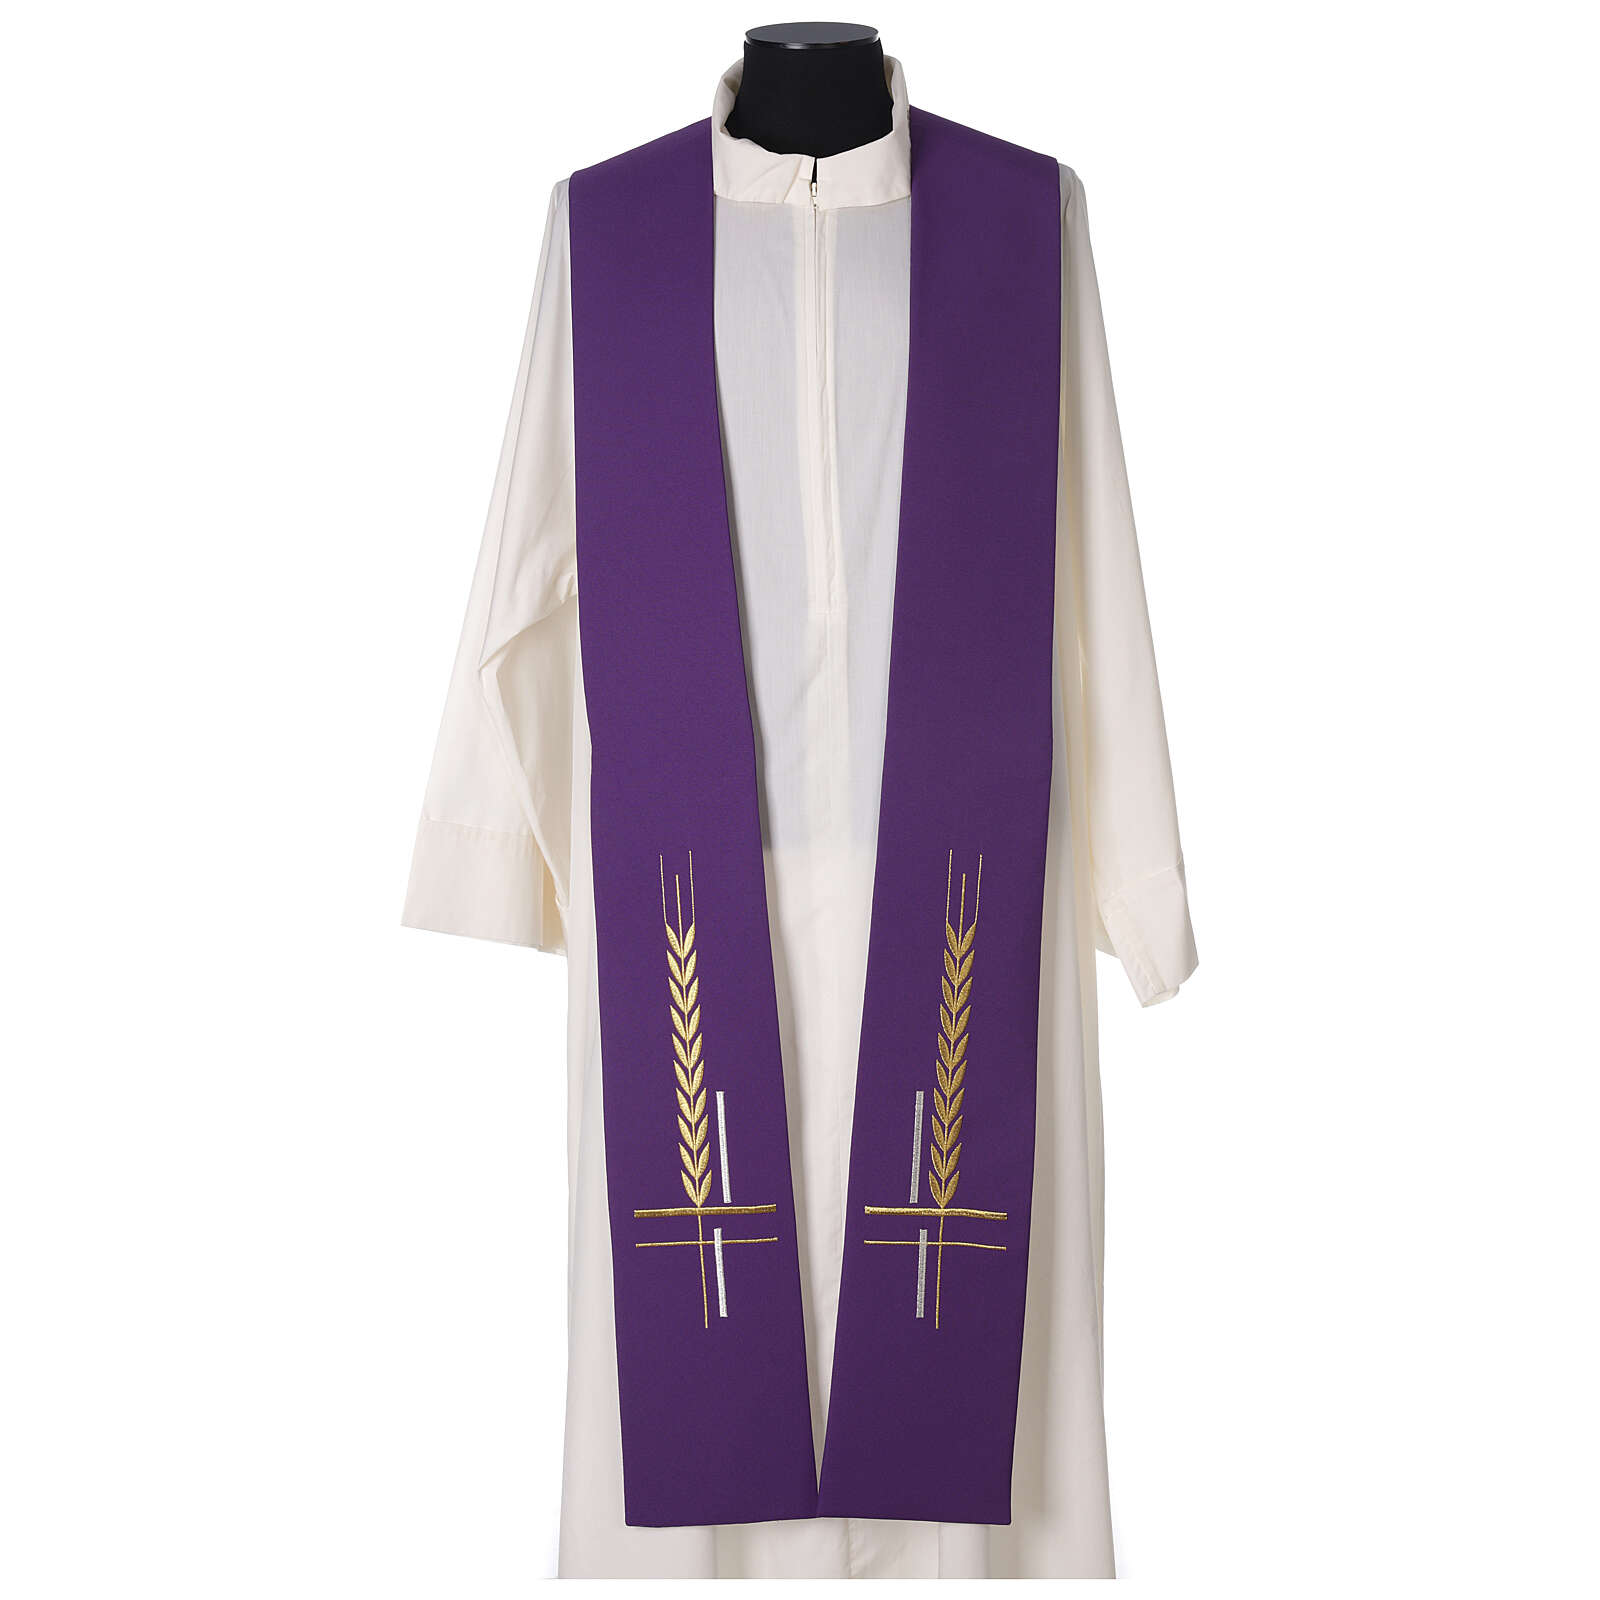 Stole in 100% polyester with ear of wheat embroidery 4